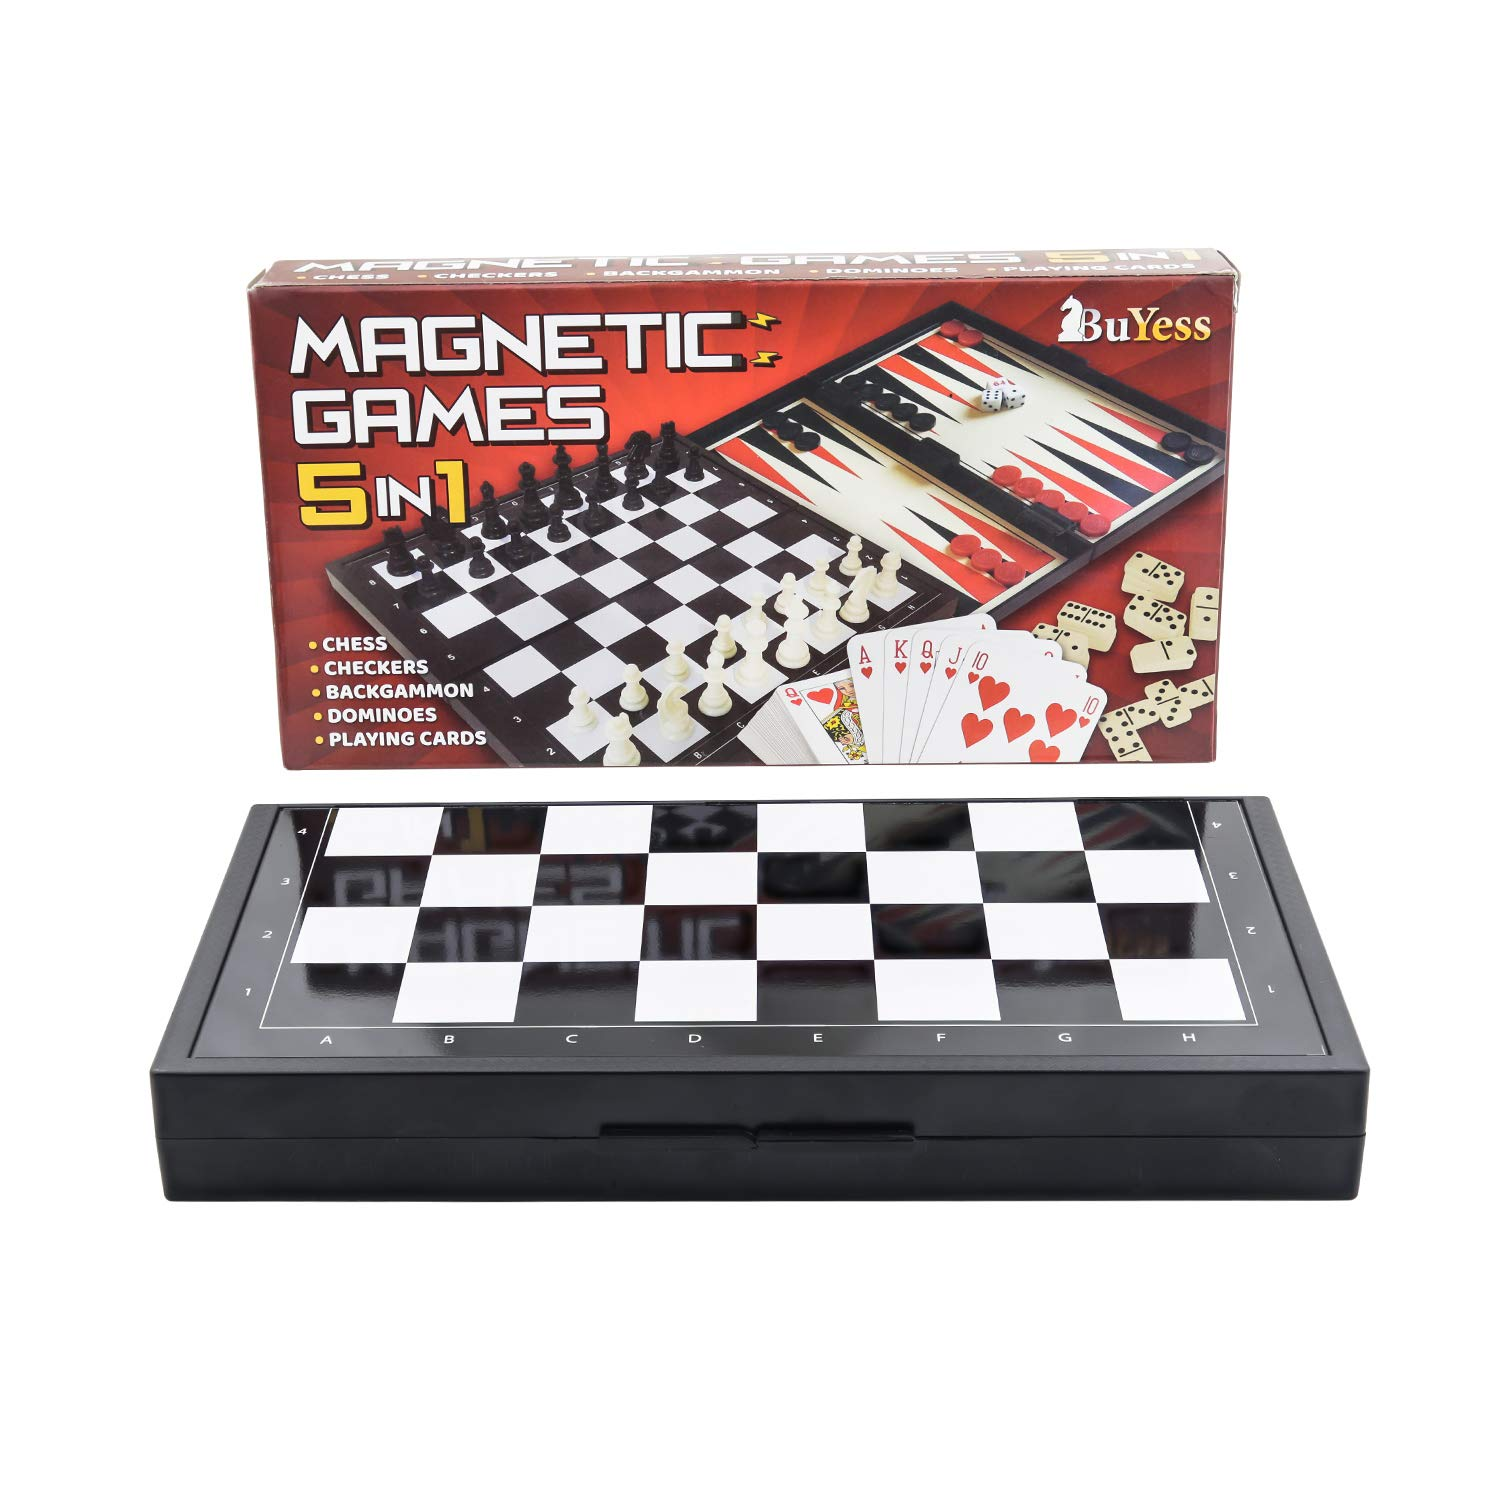 5 in 1 Magnetic Travel Chess Set + Checkers, Dominoes, Backgammon, Playing Cards for Kids and Adults by Buyess